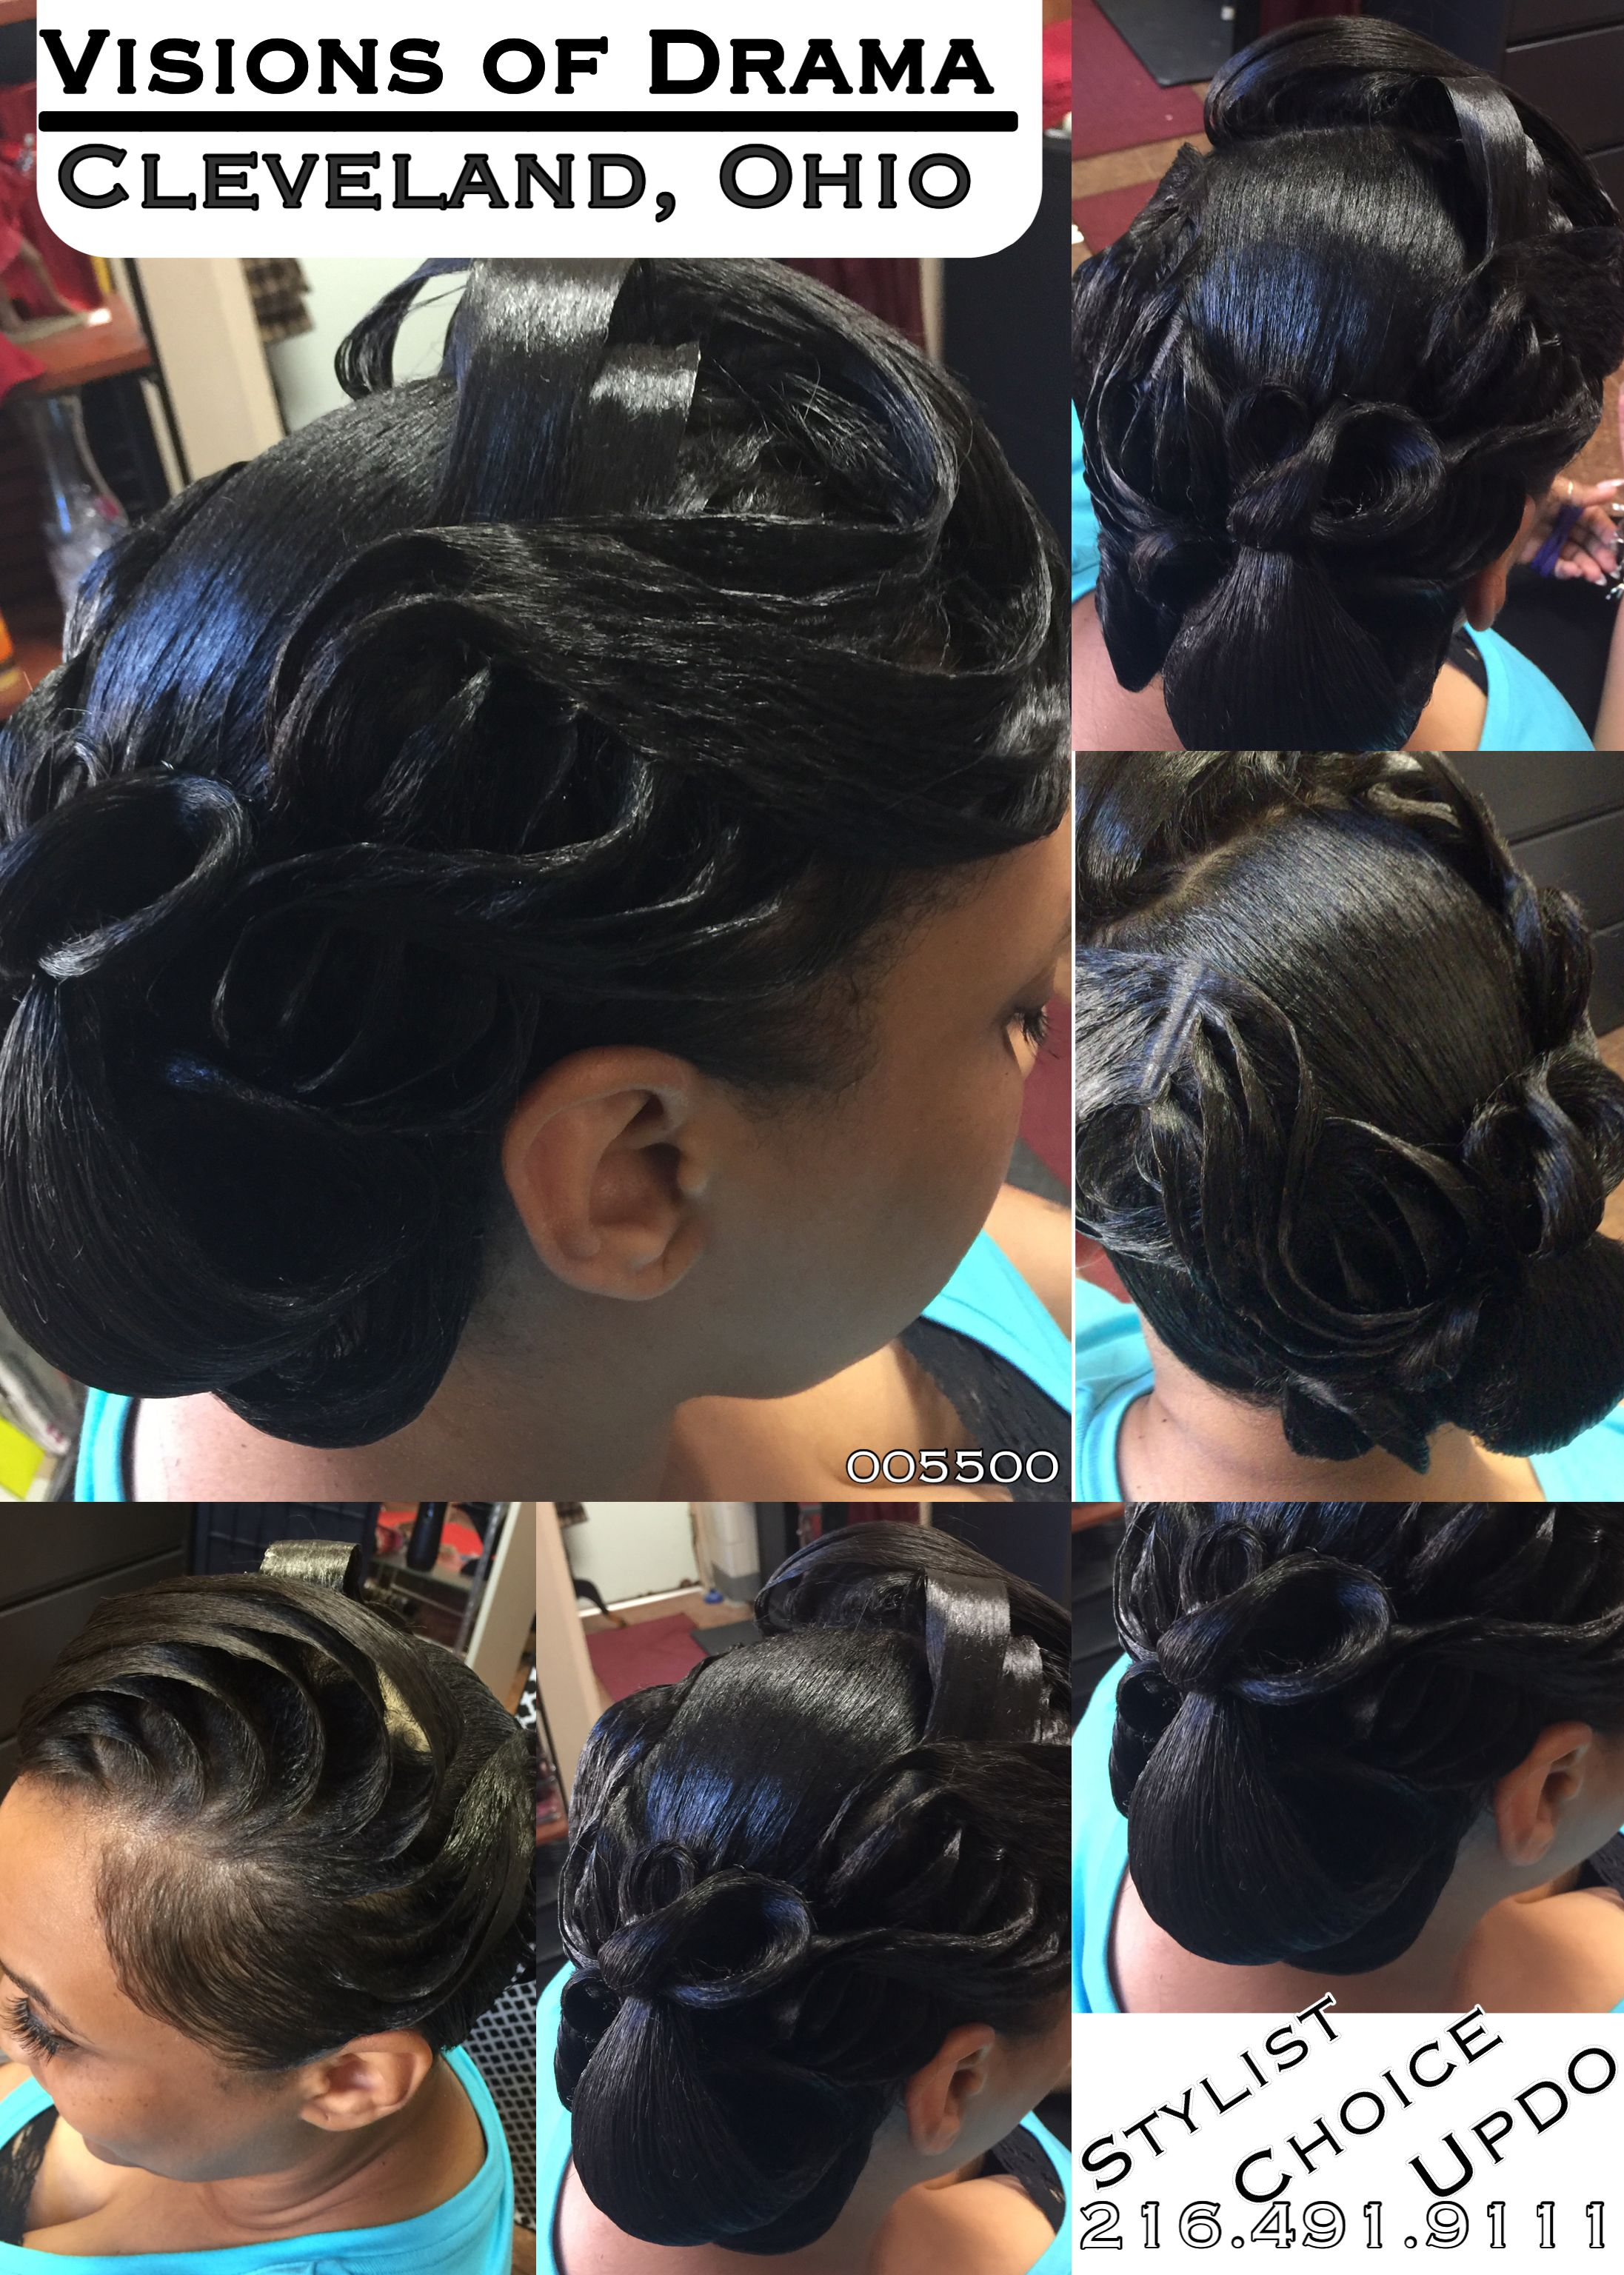 Kayla S Visions Of Drama Cleveland Ohio Afrocentric Hair Designs Hairstyles Afrohairstyles Pro Afrocentric Hairstyles Natural Hair Styles Afro Hairstyles